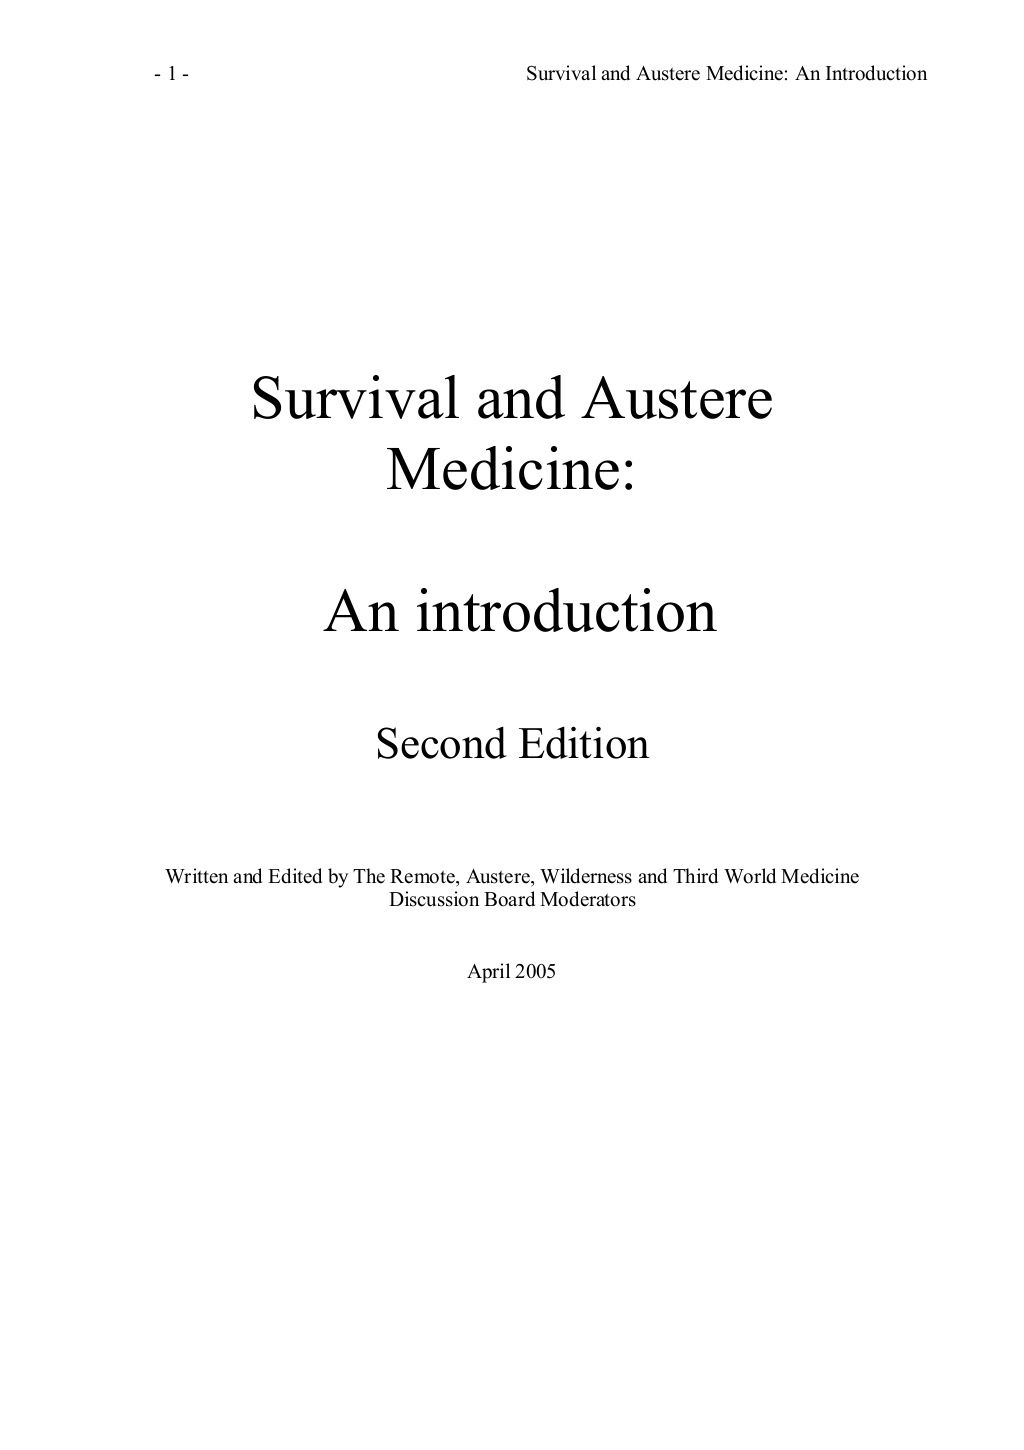 Survival and Austere Medicine introduction final 2 by Elsa von Licy via slideshare